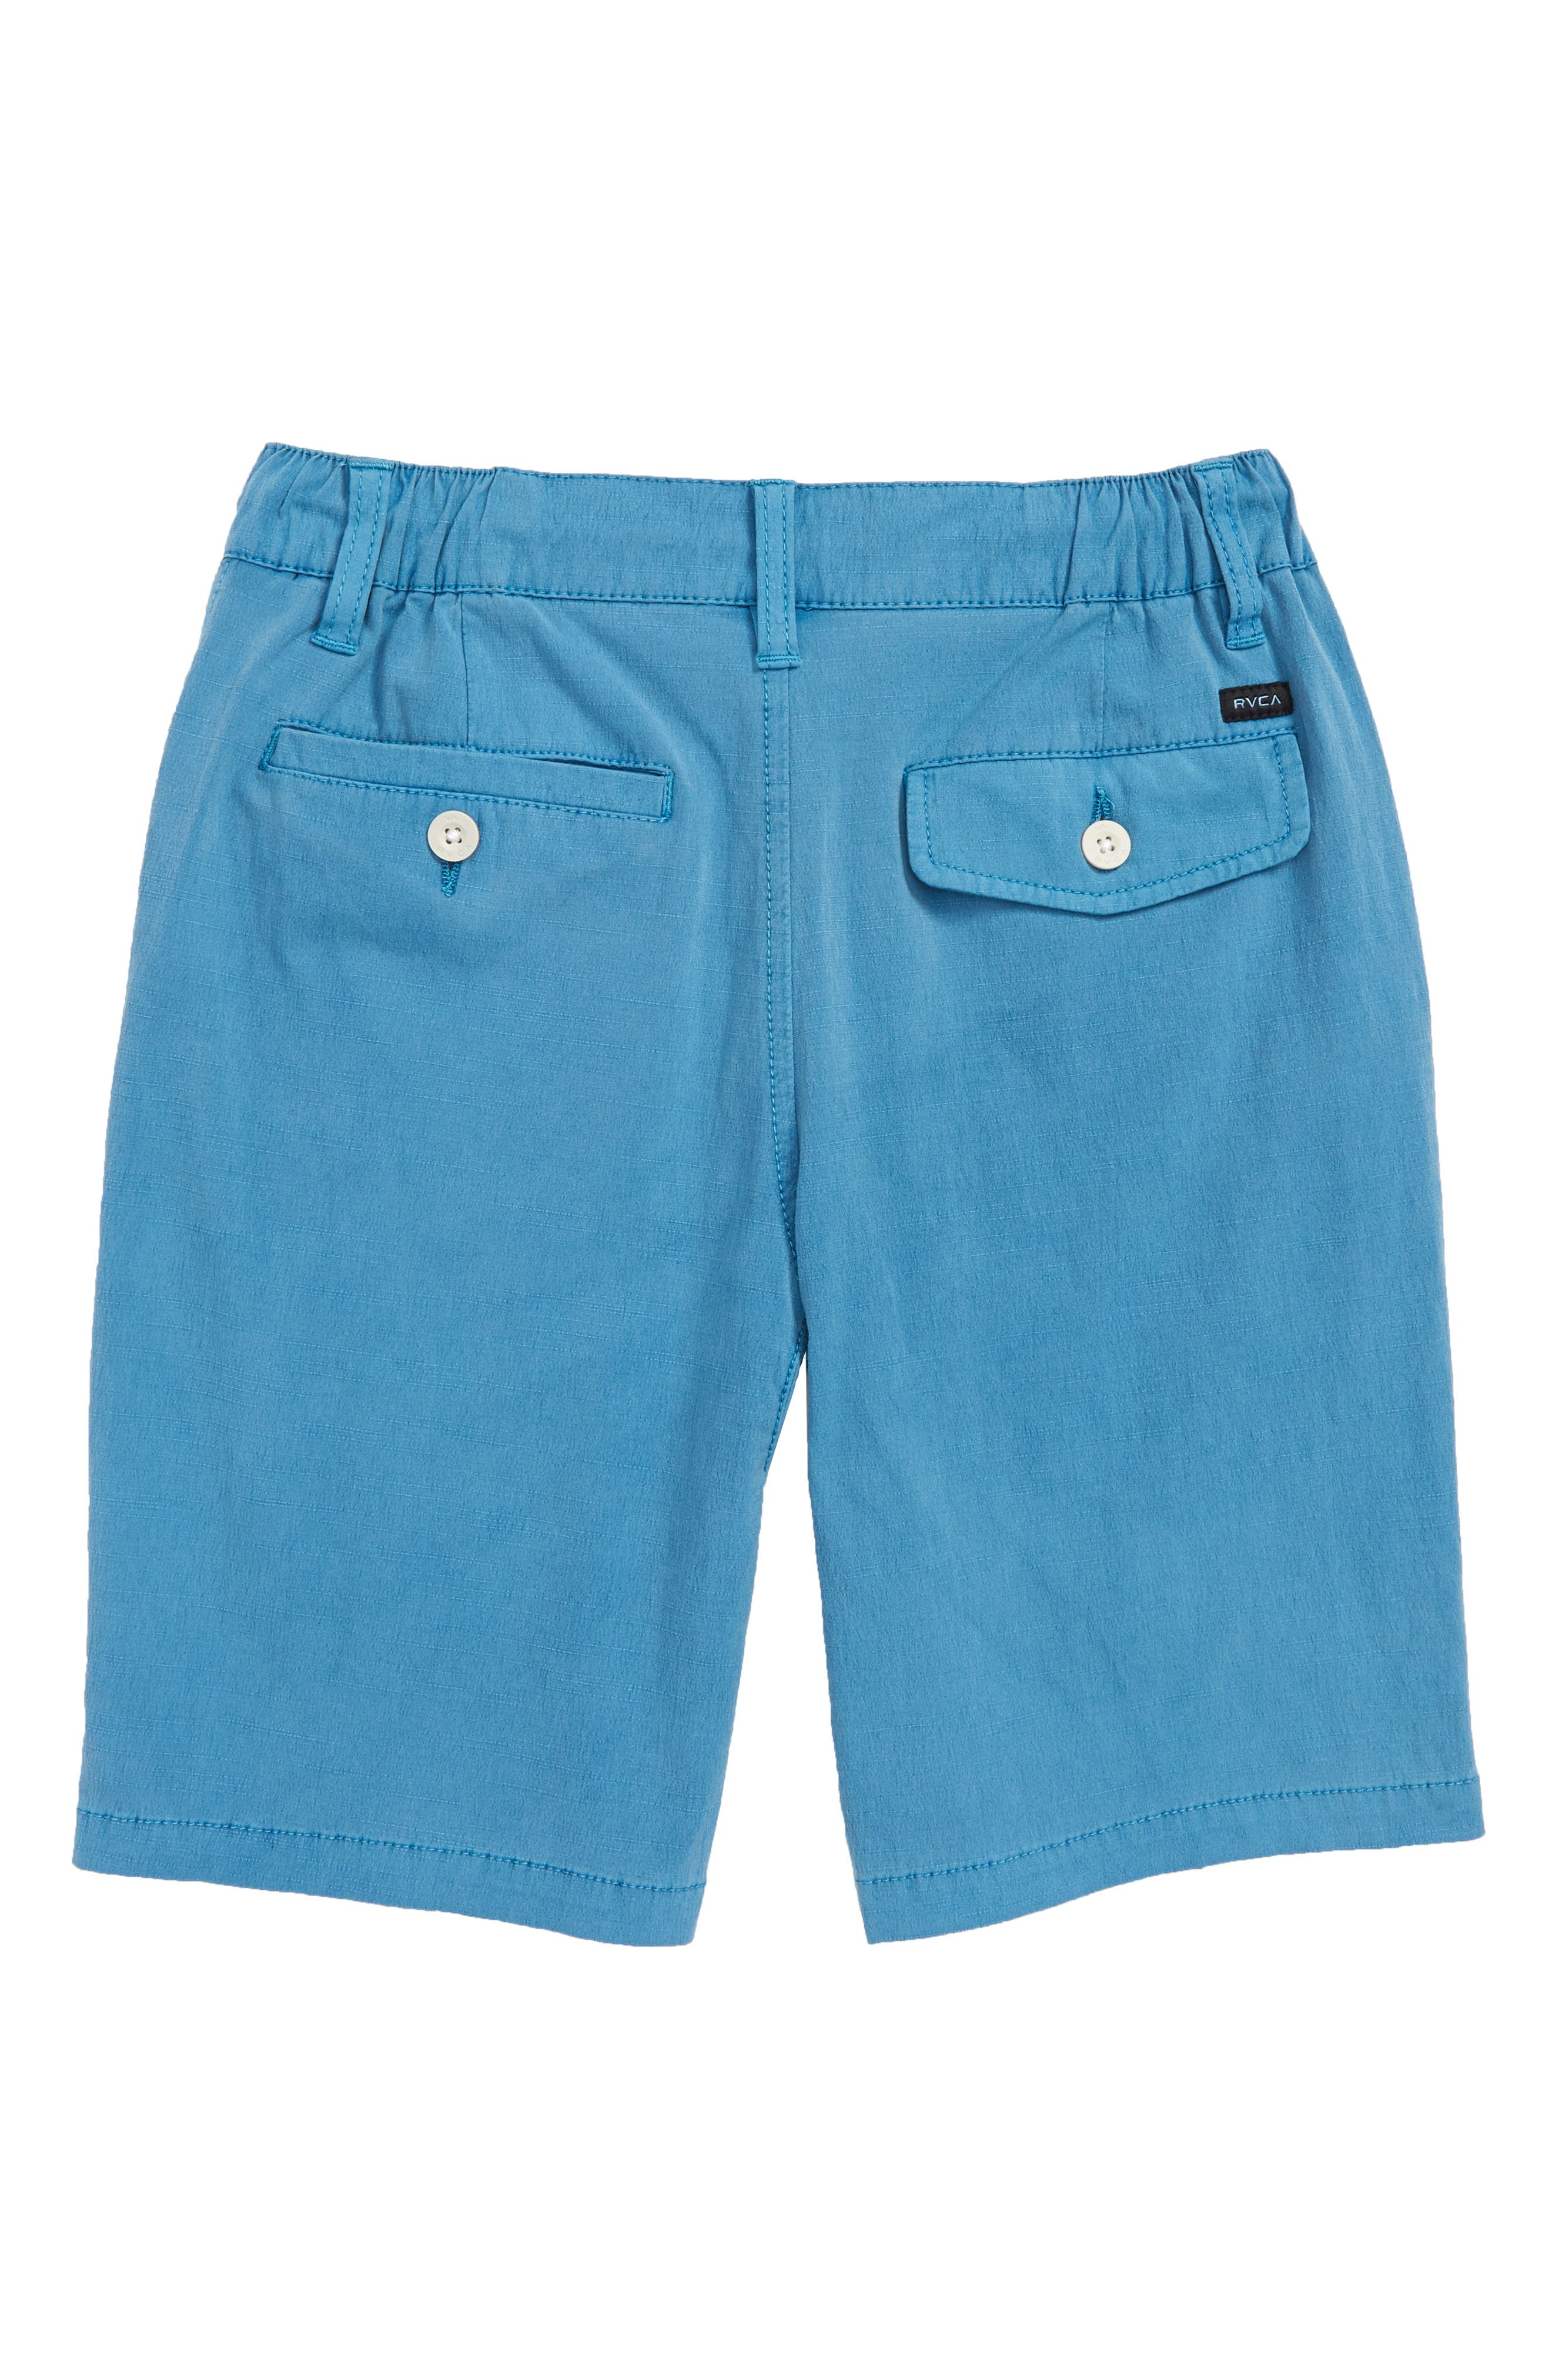 All Time Coastal SOL Hybrid Shorts,                             Alternate thumbnail 2, color,                             460